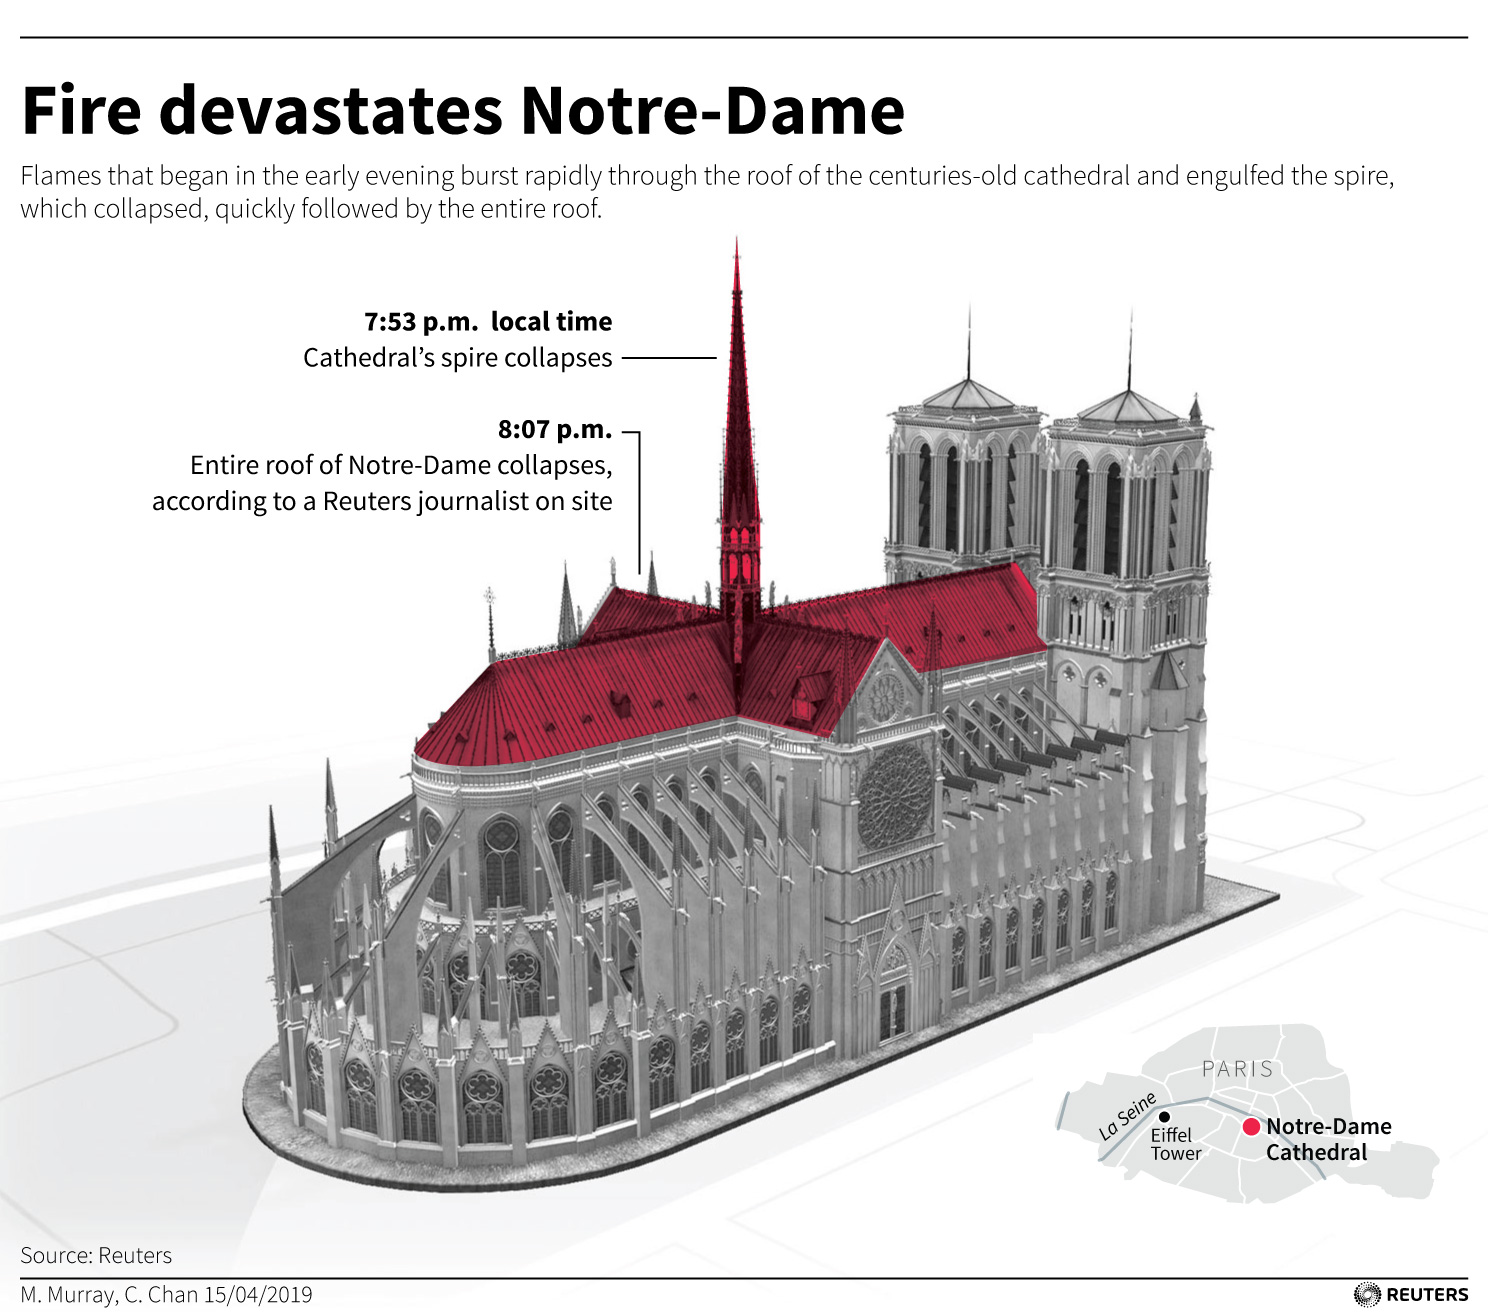 An illustration of Notre-Dame Cathedral indicating where the fire took place along the roof.